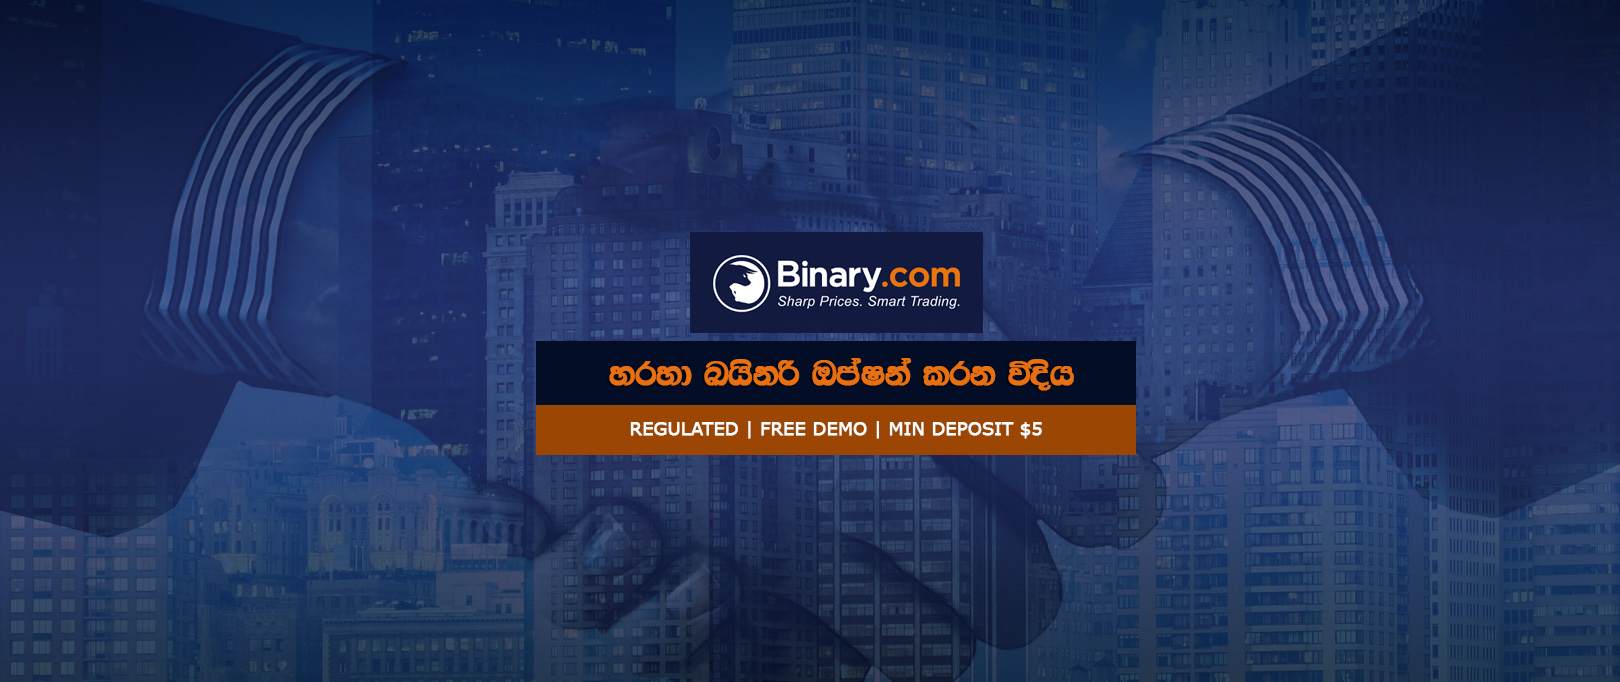 binary.com regulated binary option broker tutorial in sinhala sri lanka by prathilaba